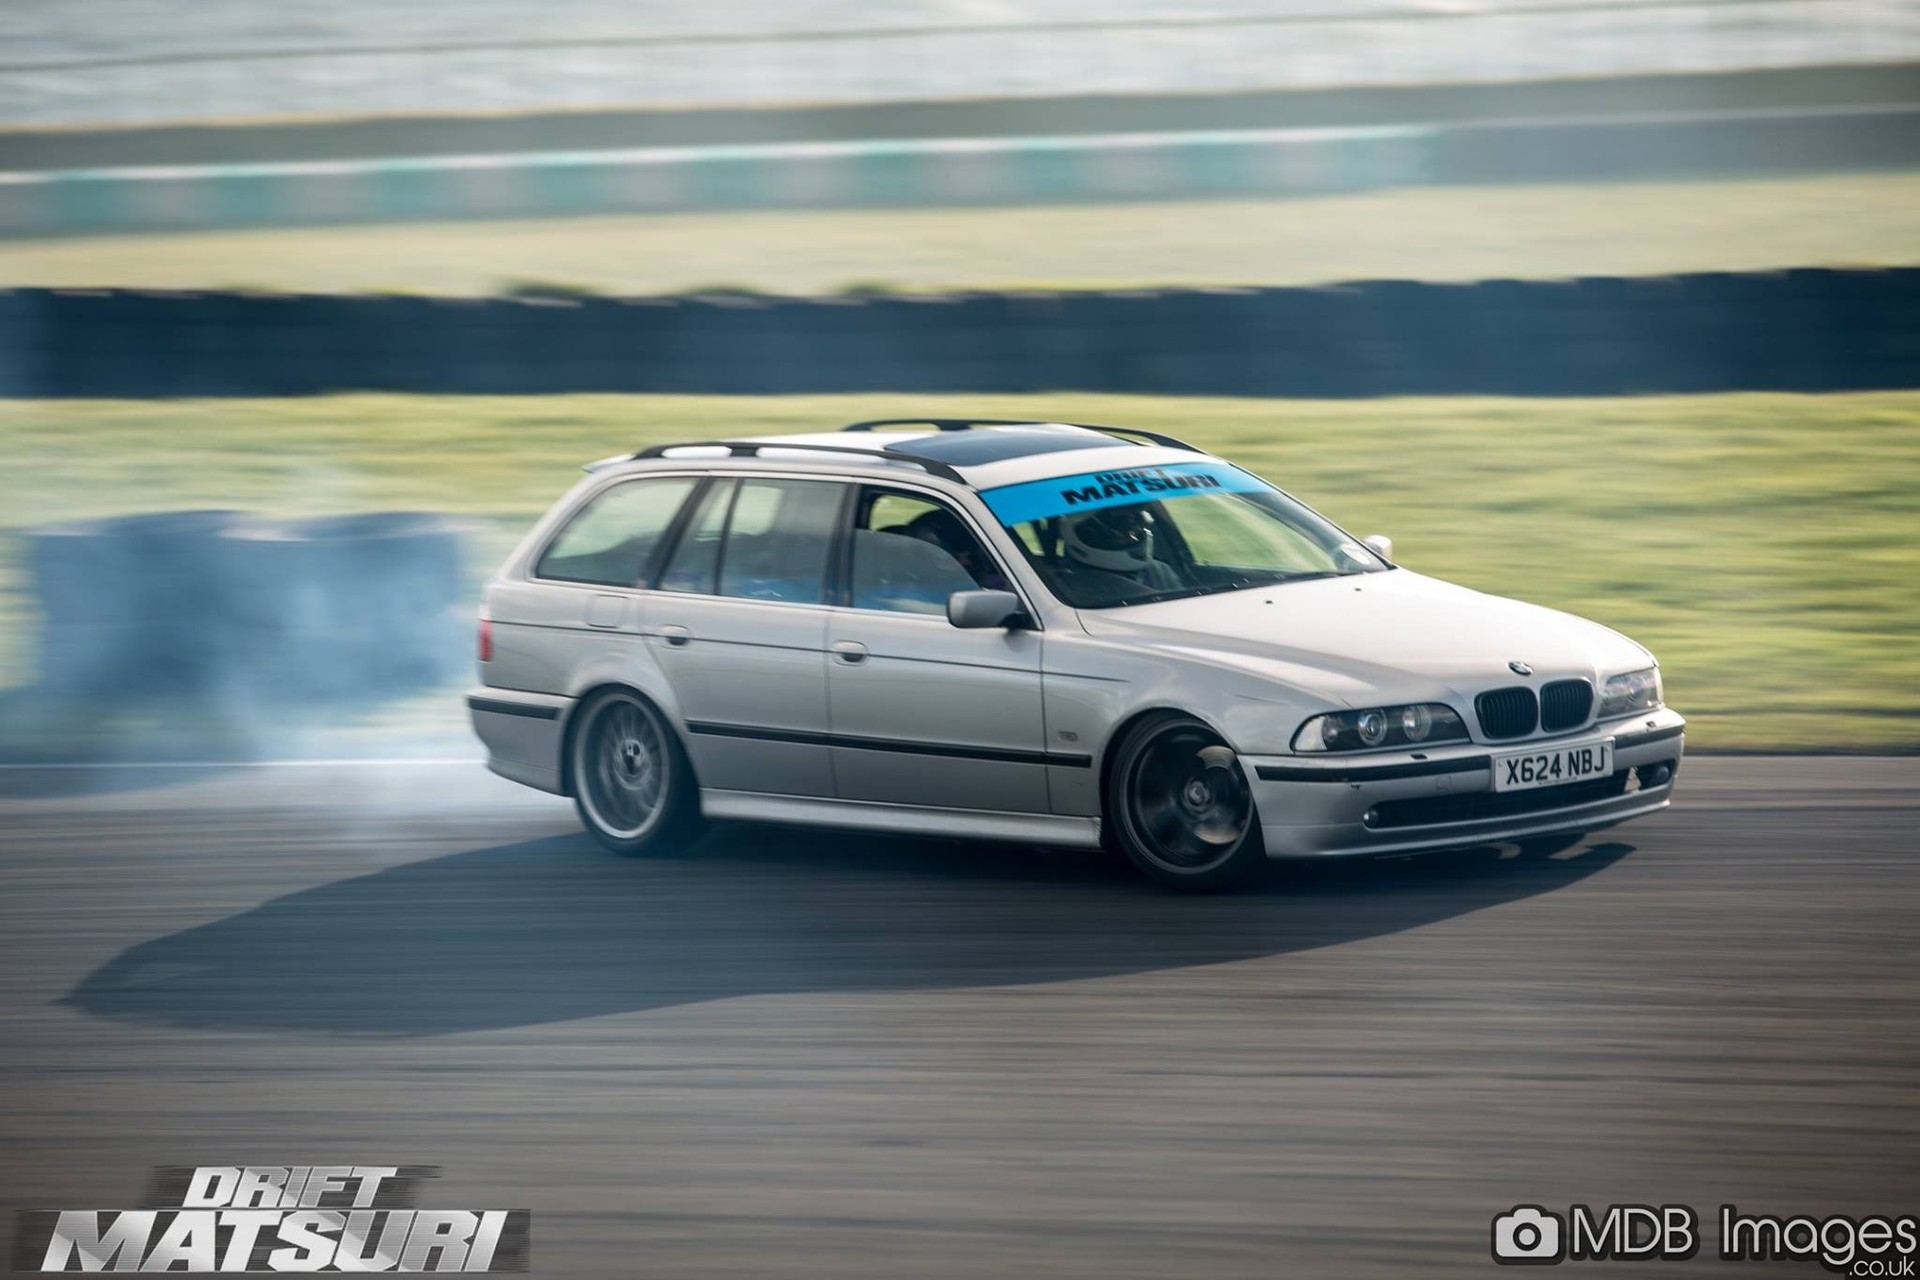 Best Looking Car Wallpaper Bmw E39 540i Touring 6 Speed Manual Driftworks Forum